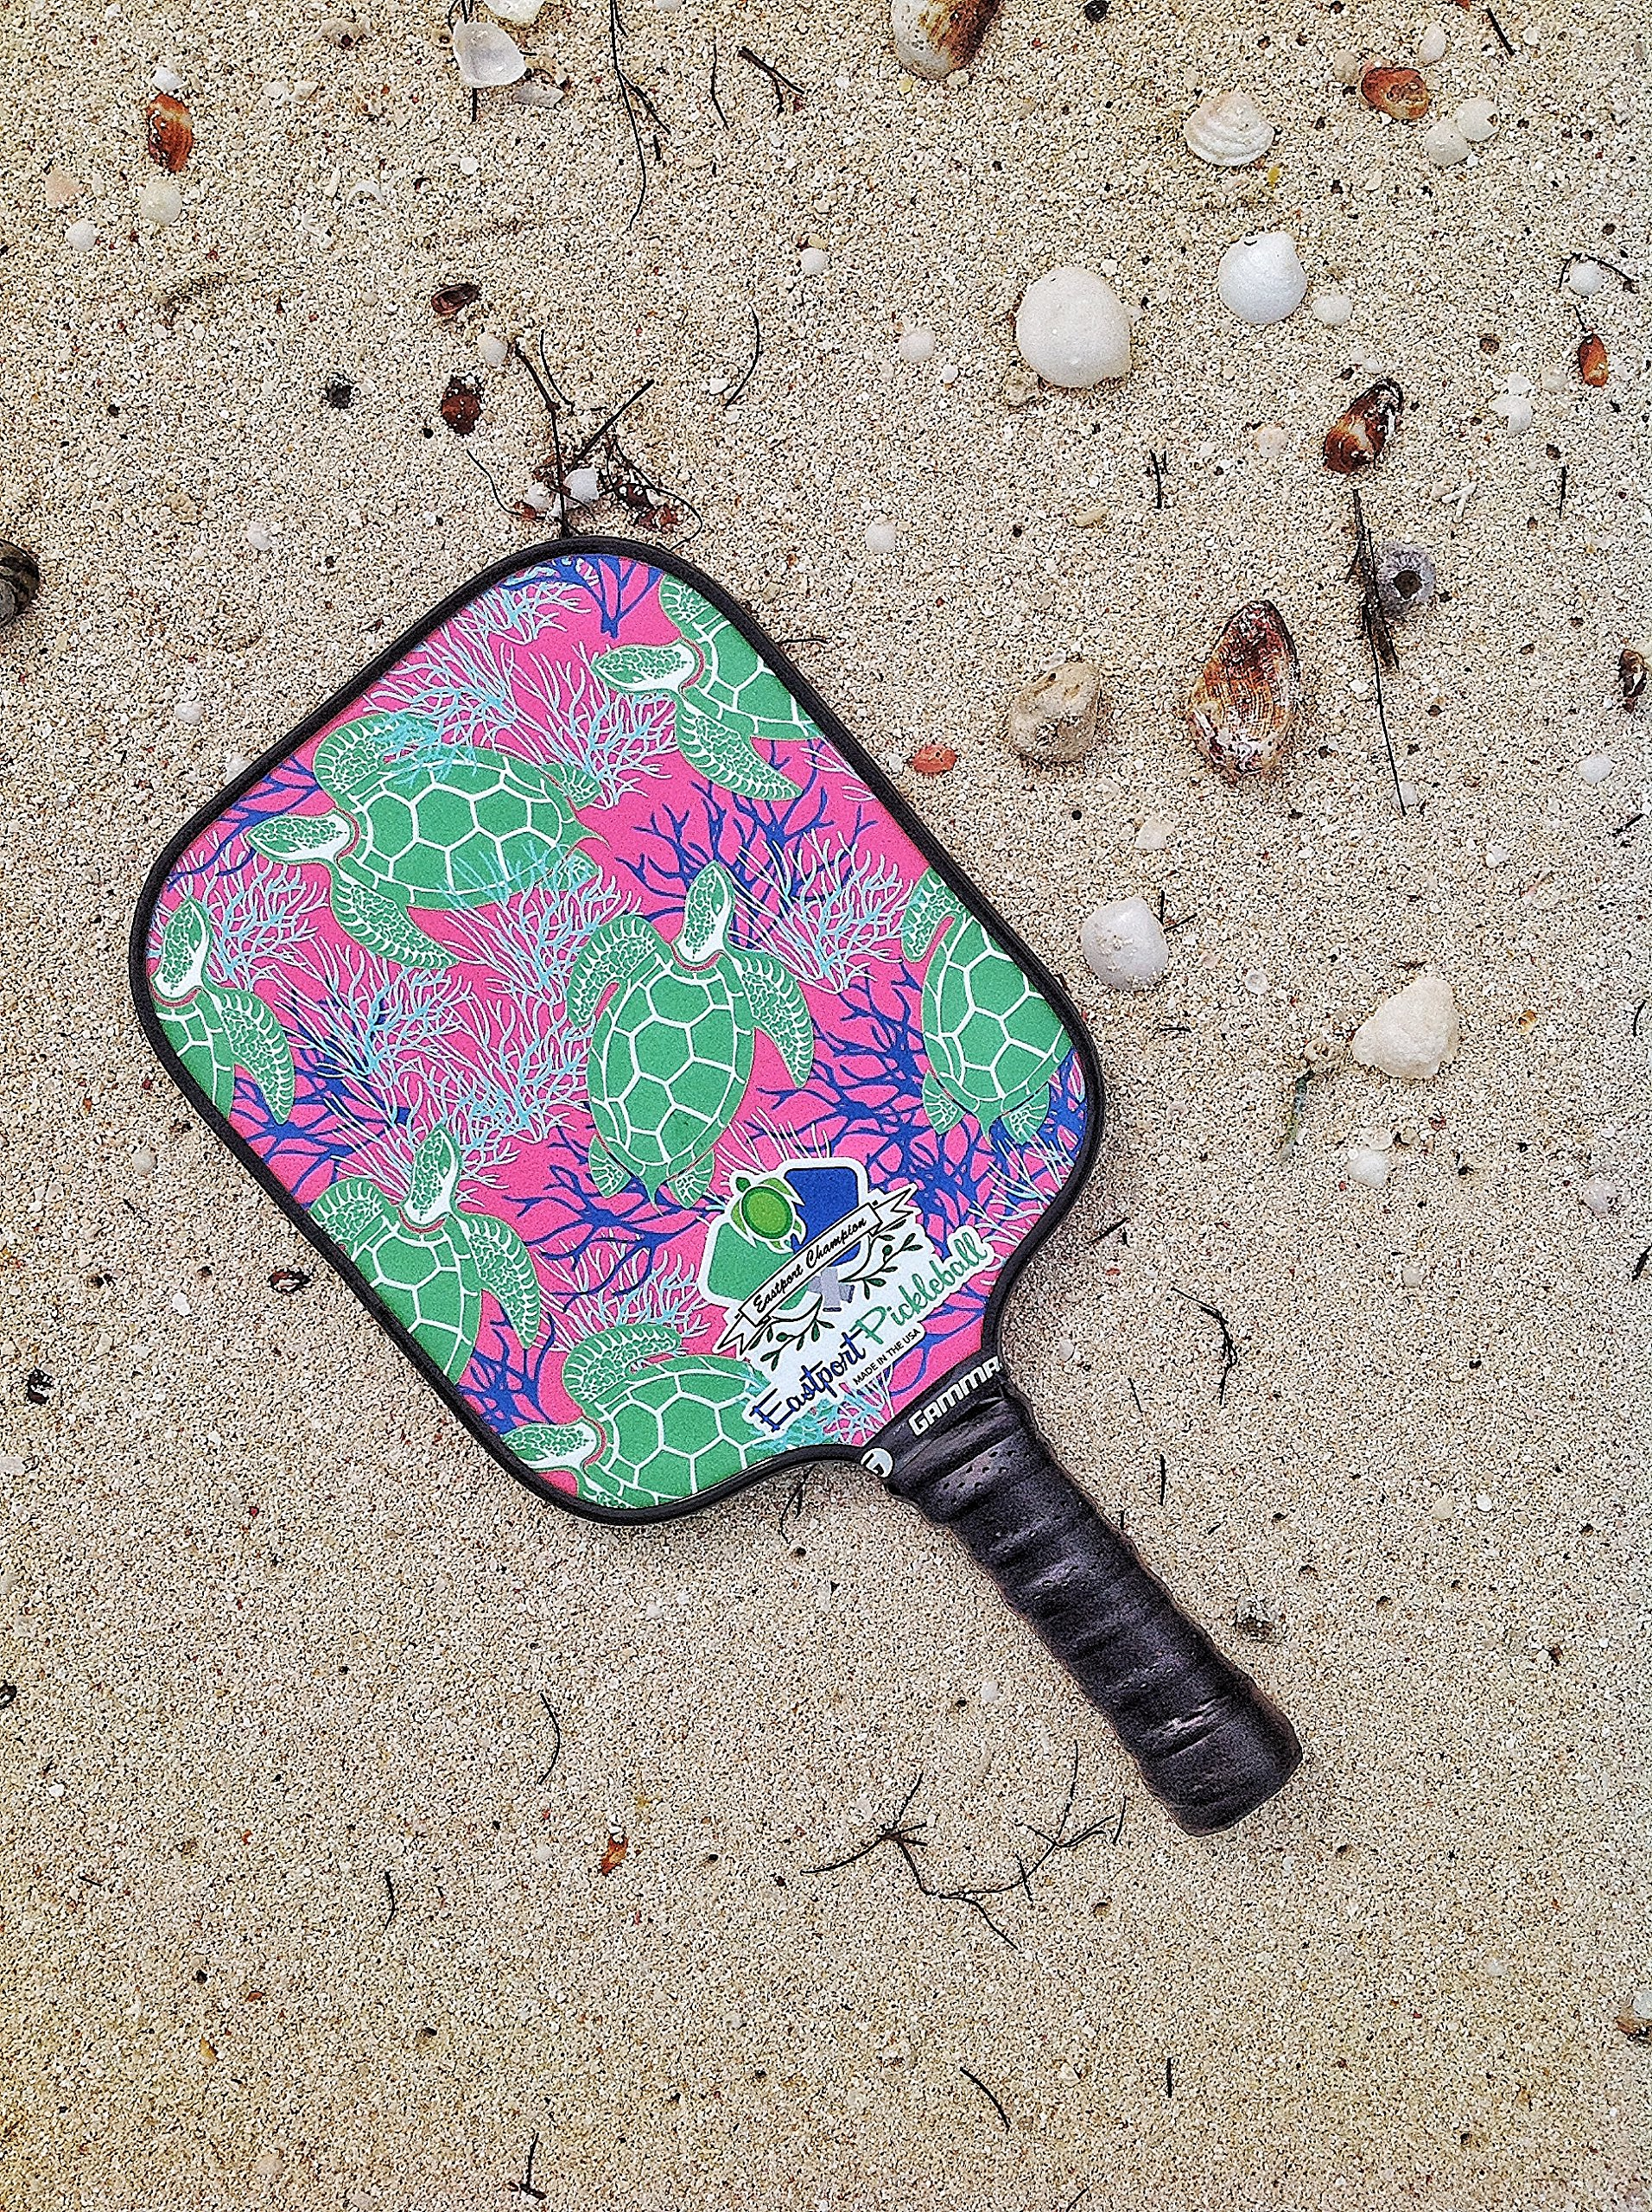 Eastport Pickleball Paddle, USAPA Approved, Green Turtle on Pink Sea - Pickleball's Poshest Paddle by Eastport Pickleball